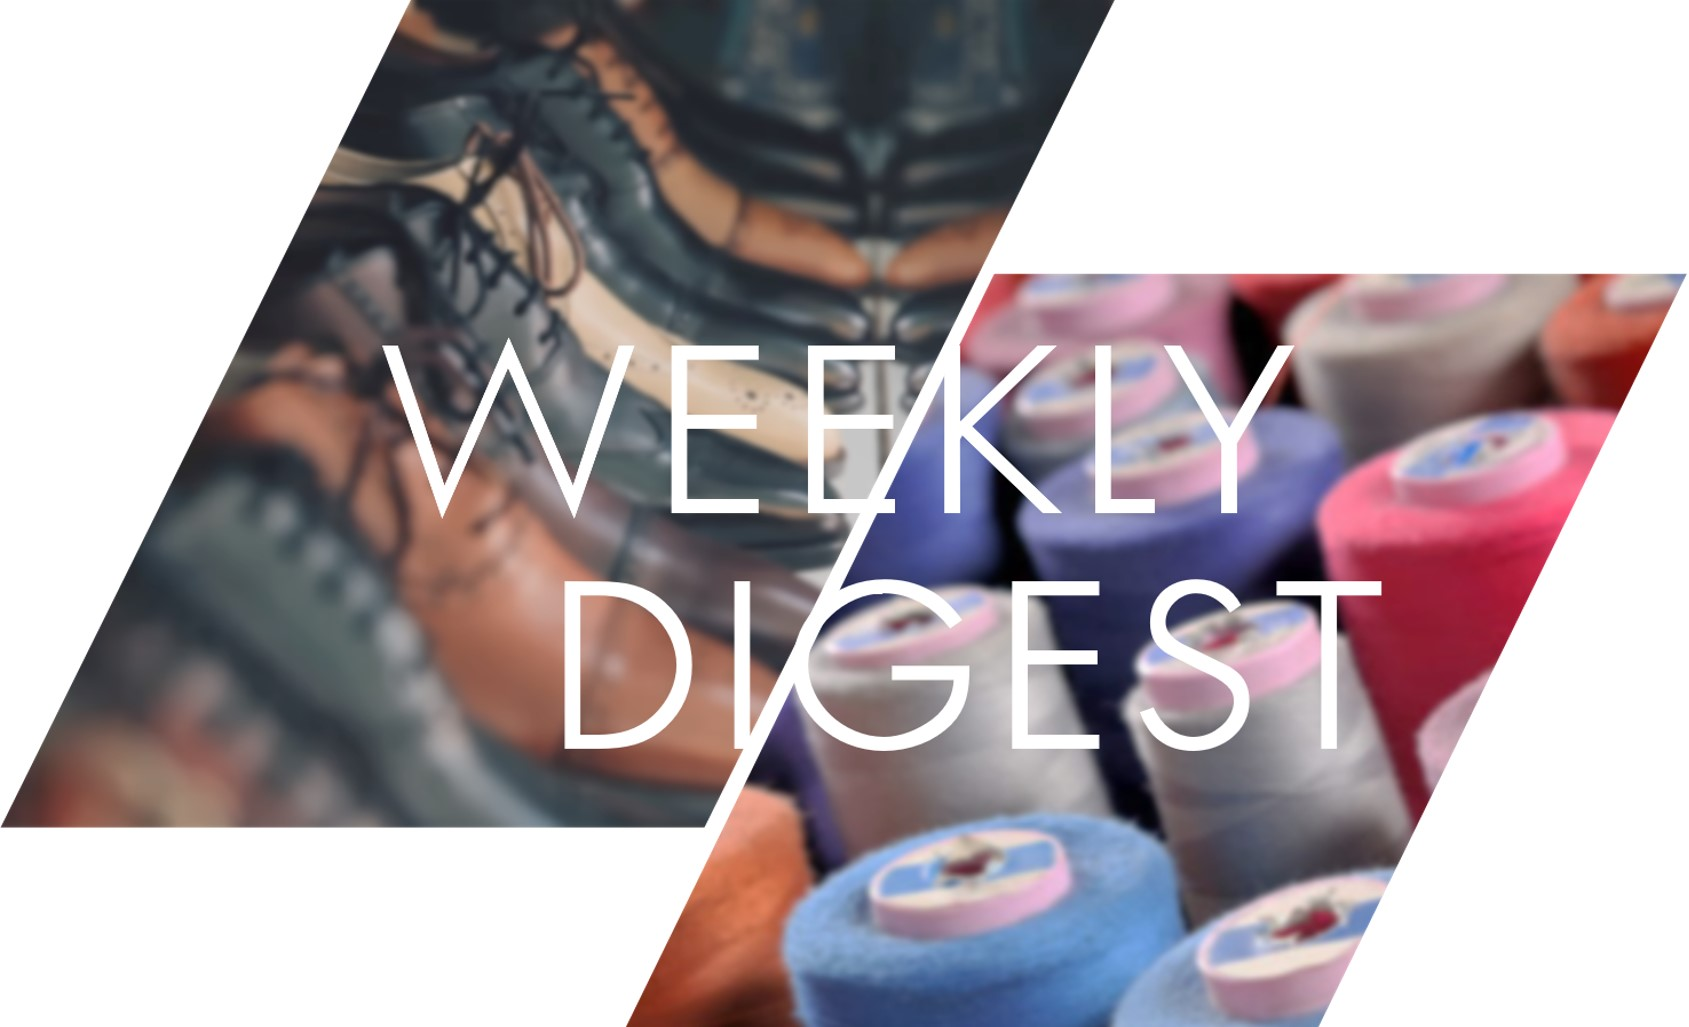 Weekly Digest   Issue #1